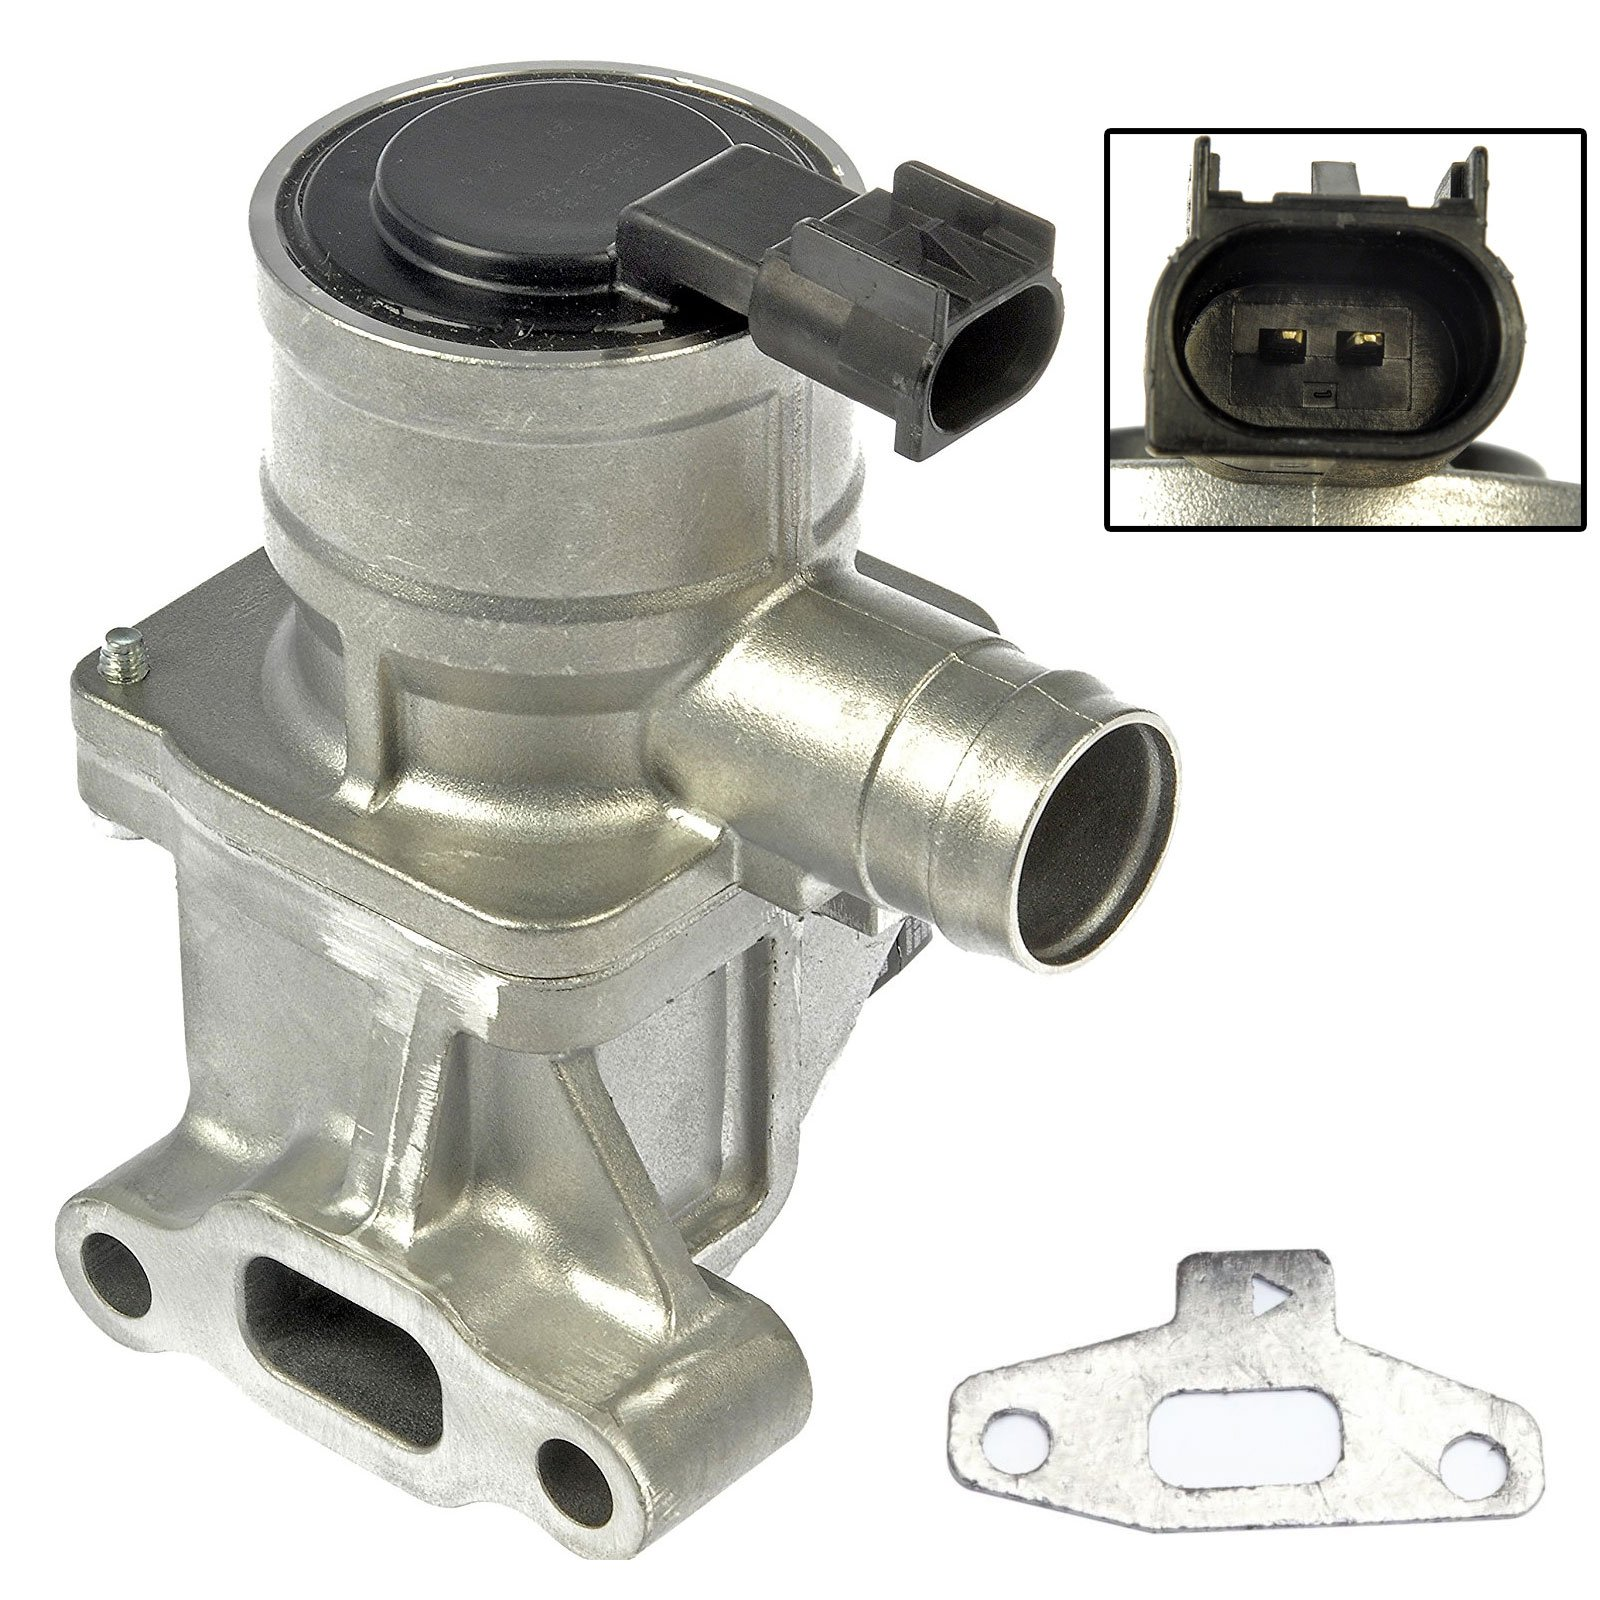 Air Injection Check Valve For Olds Chevy Chevrolet Trailblazer GMC Envoy Replaces OE# 12575655 by Auto Parts Prodigy